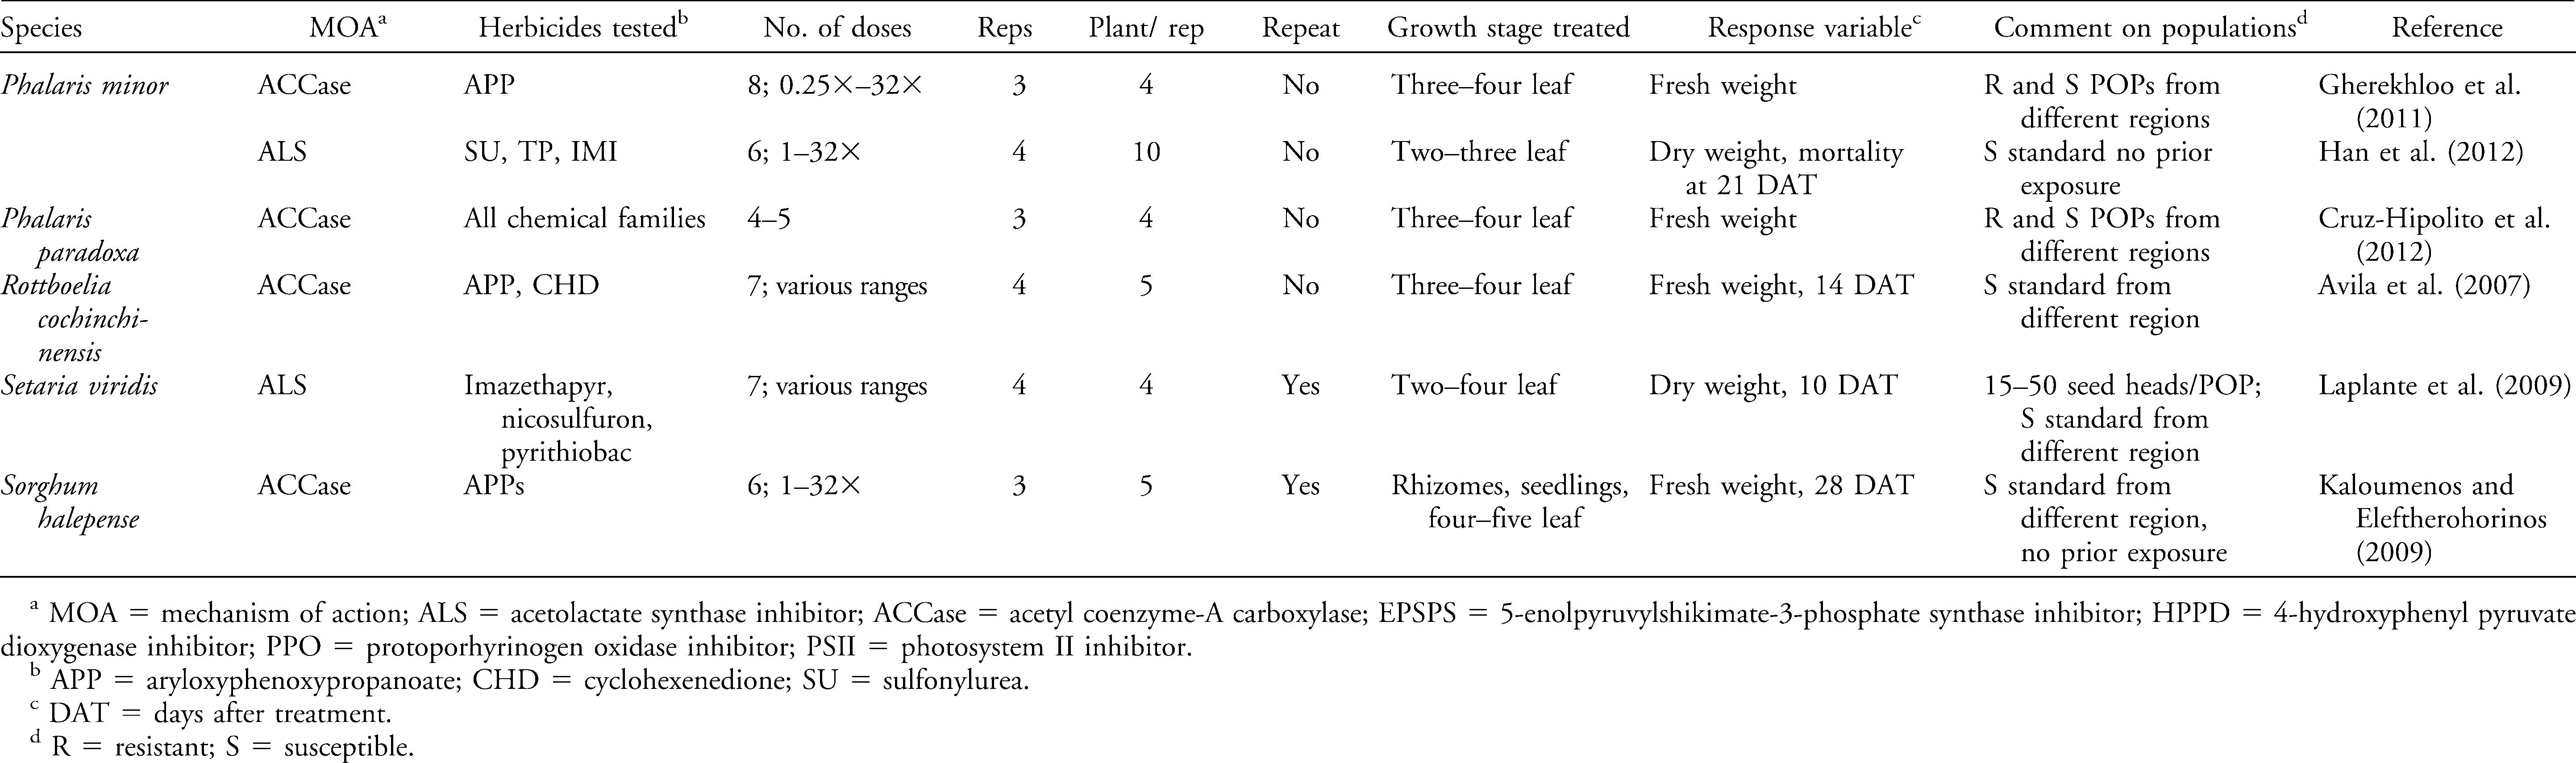 Review: Confirmation of Resistance to Herbicides and Evaluation of